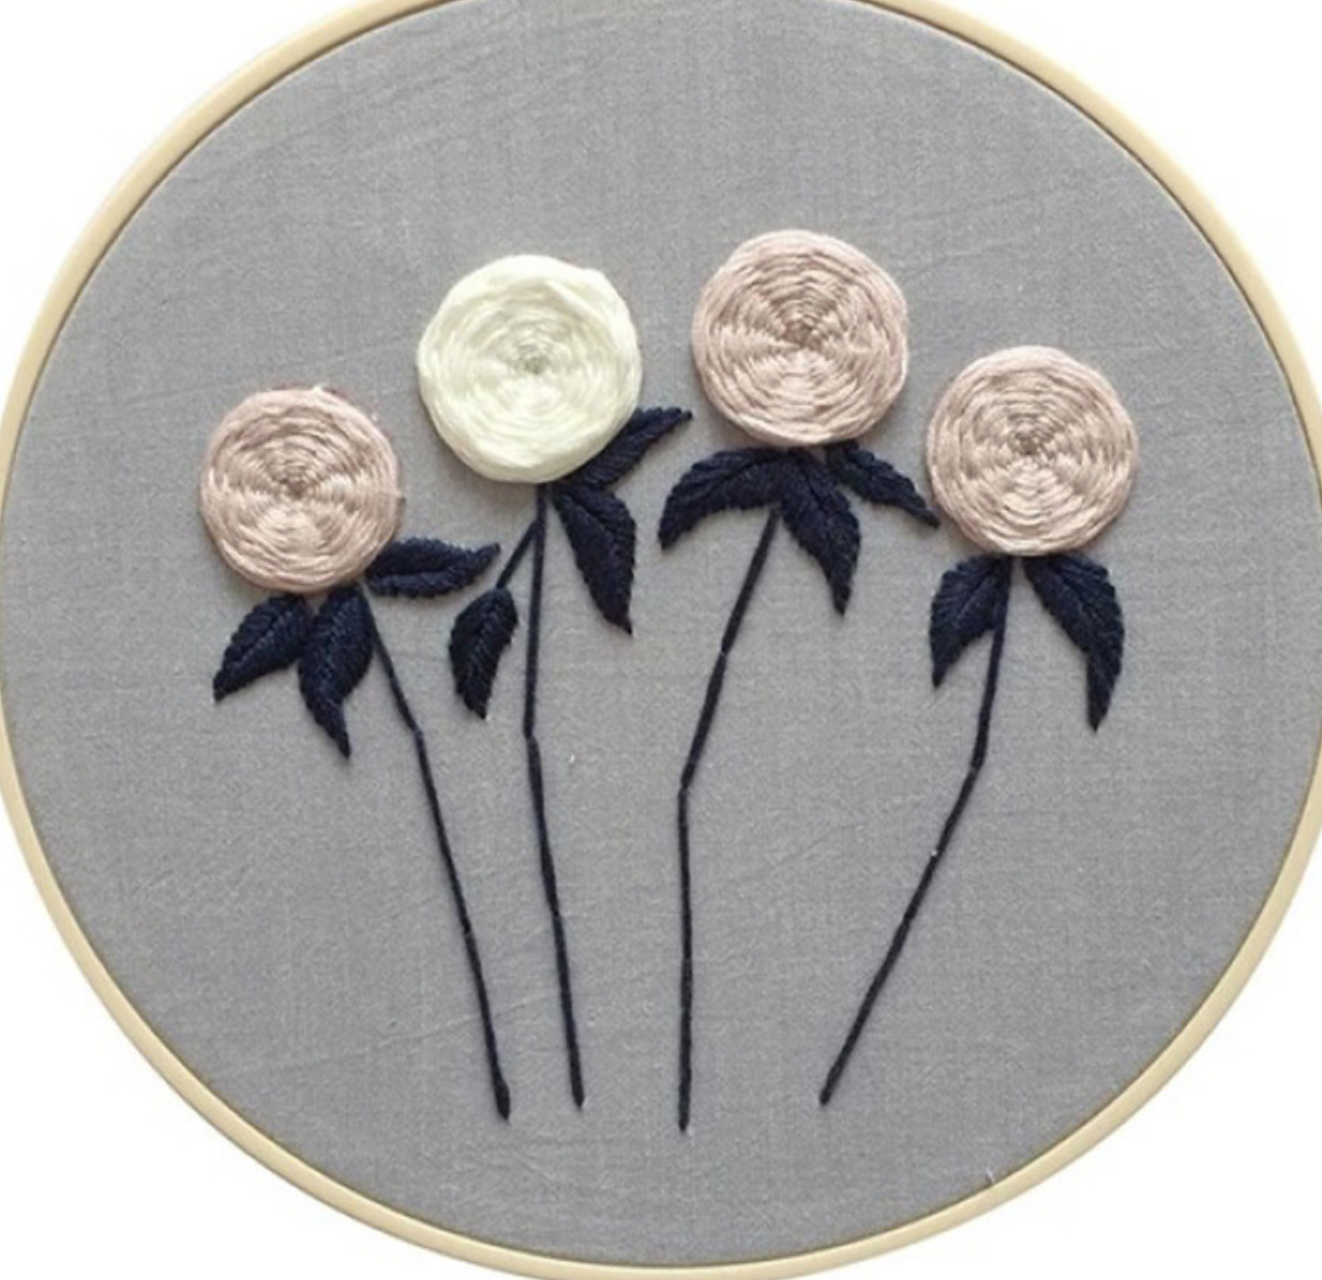 Four Flowers on Black Stems Embroidery